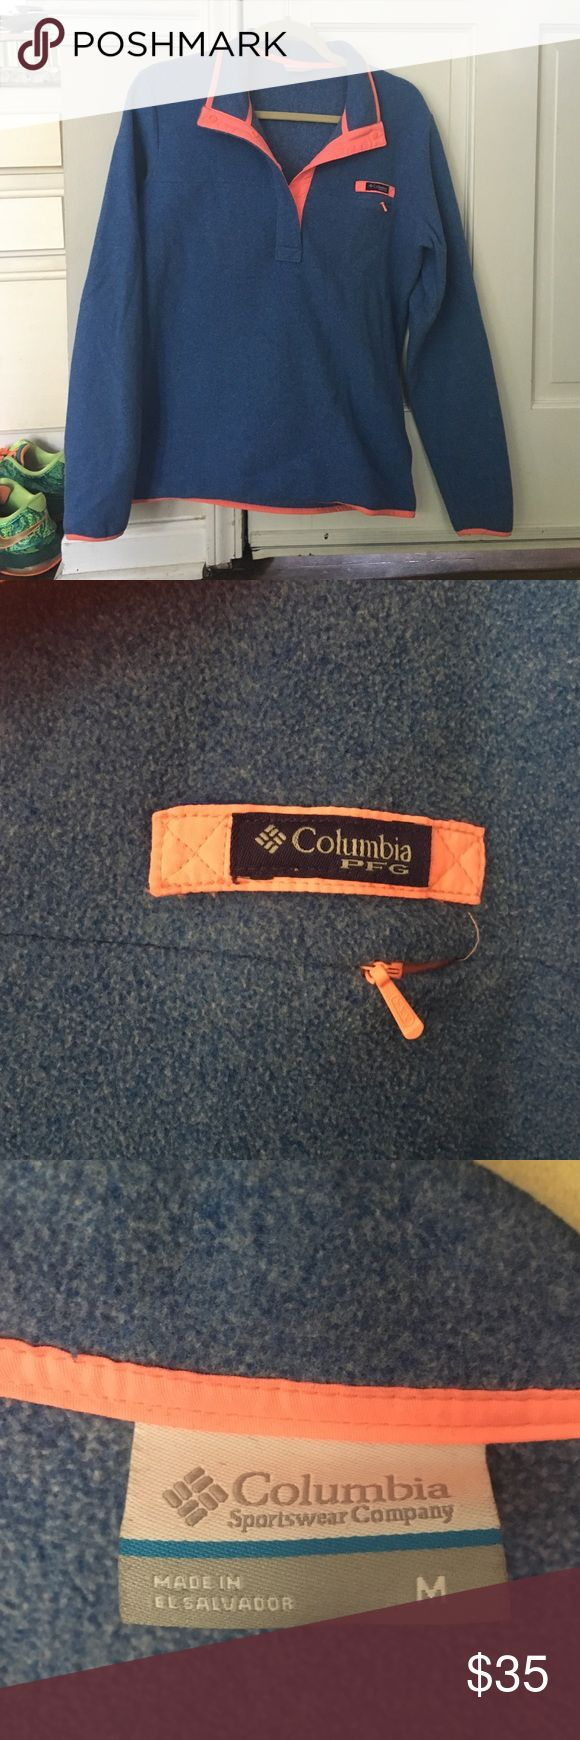 Columbia Sportswear Fleece Blue and peach trimmed Columbia button-up fleece. Worn only once or twice. Great for fall weather coming up!! Columbia Sweaters